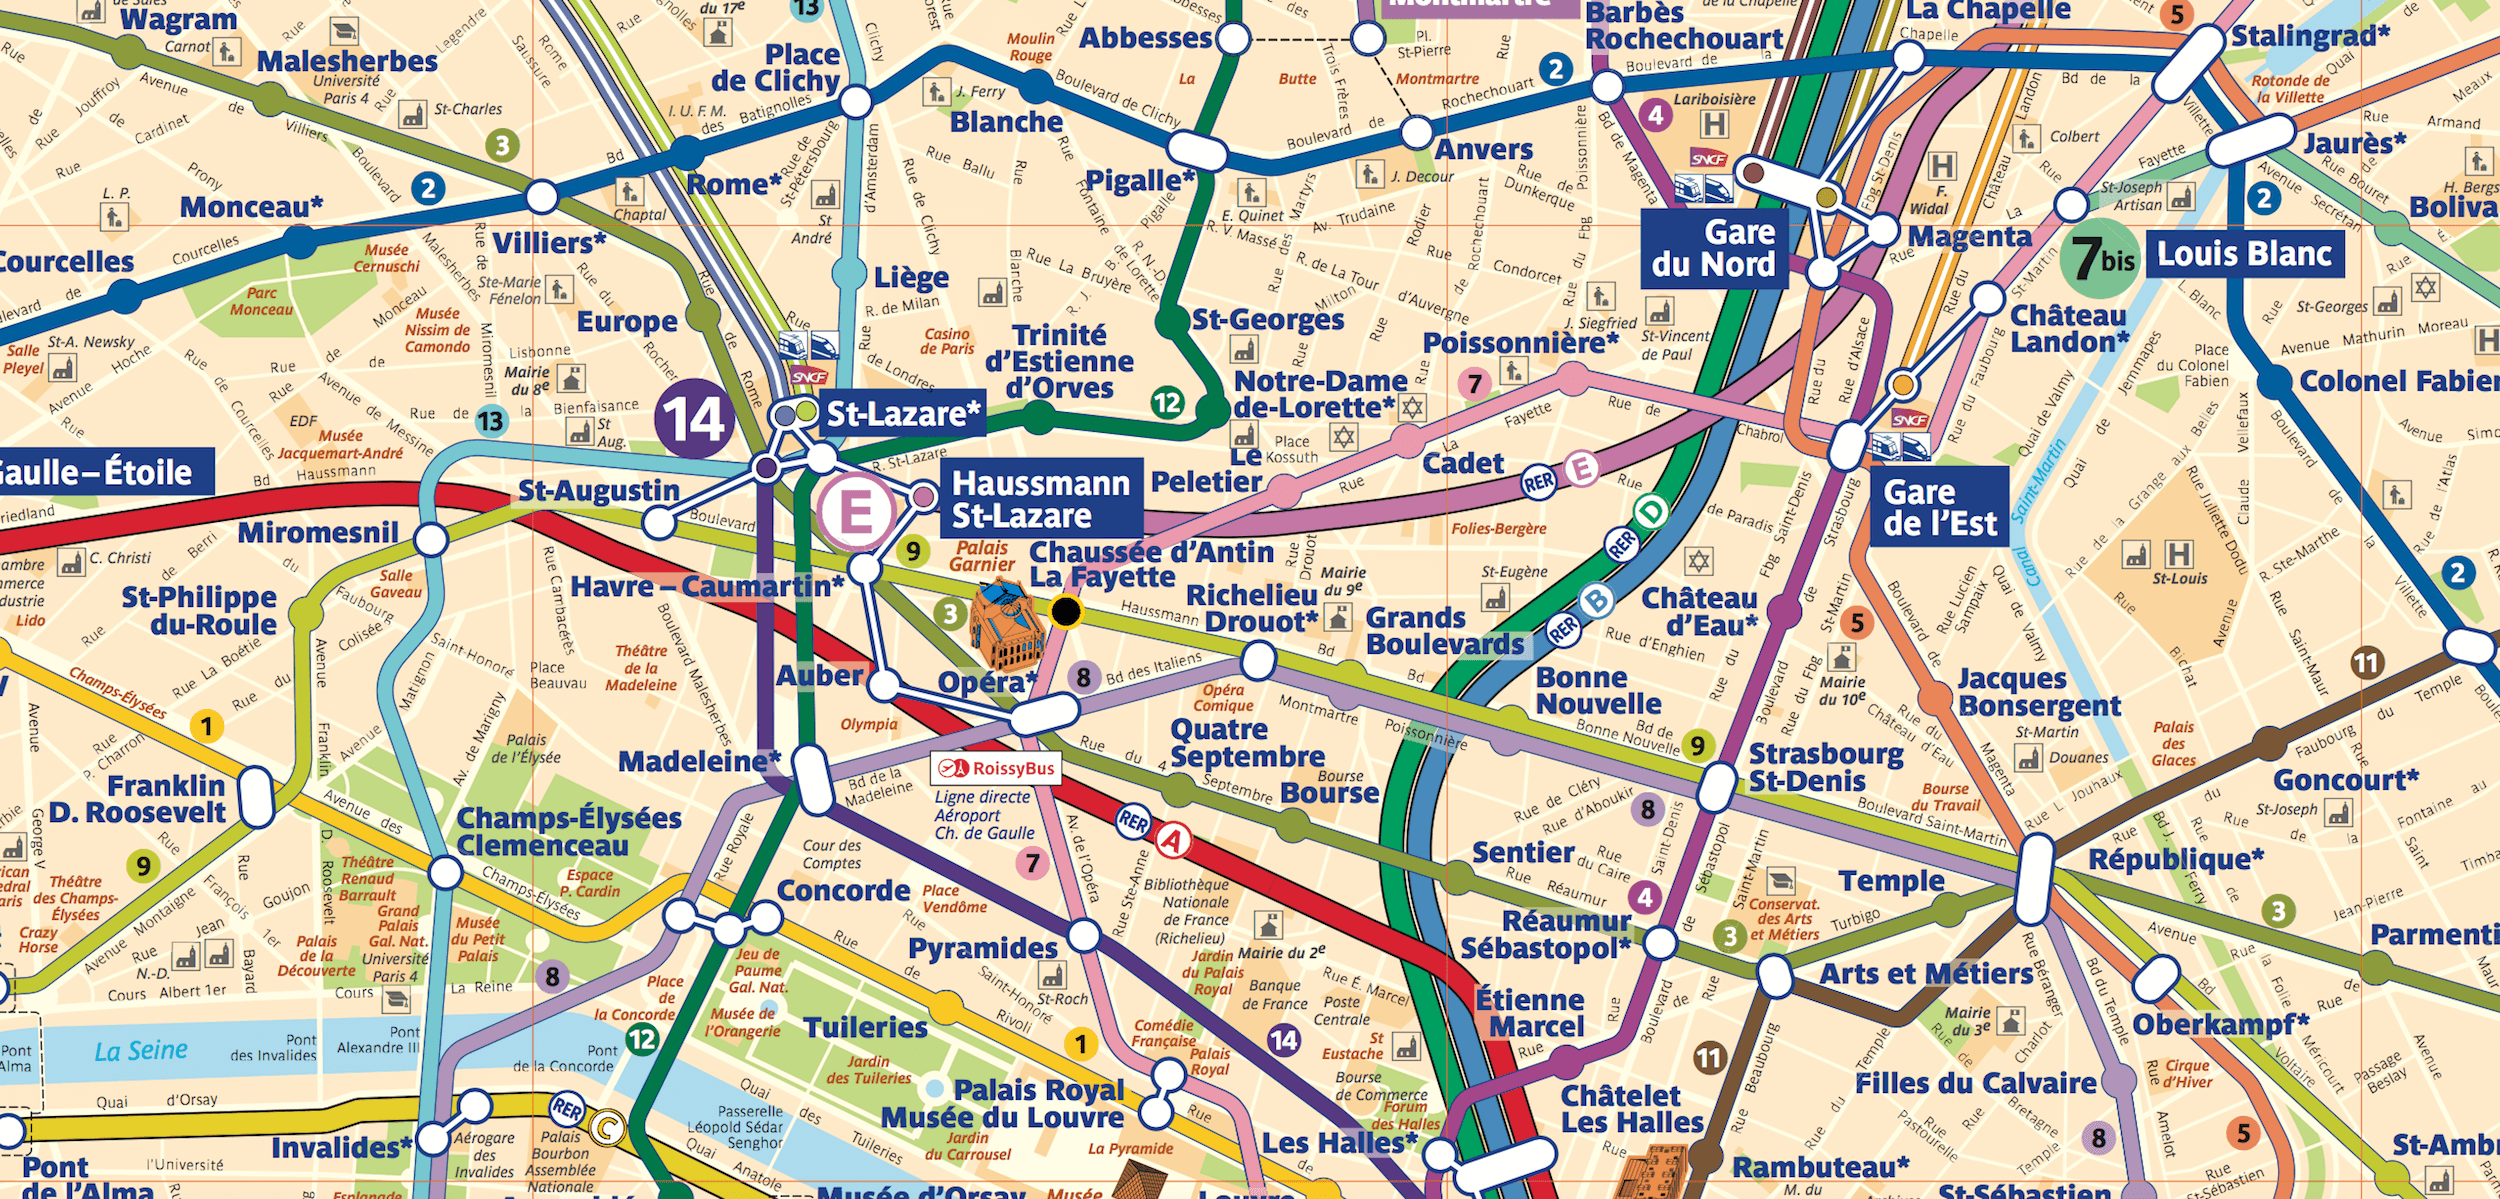 Paris Metro Map – The Redesign — Smashing Magazine